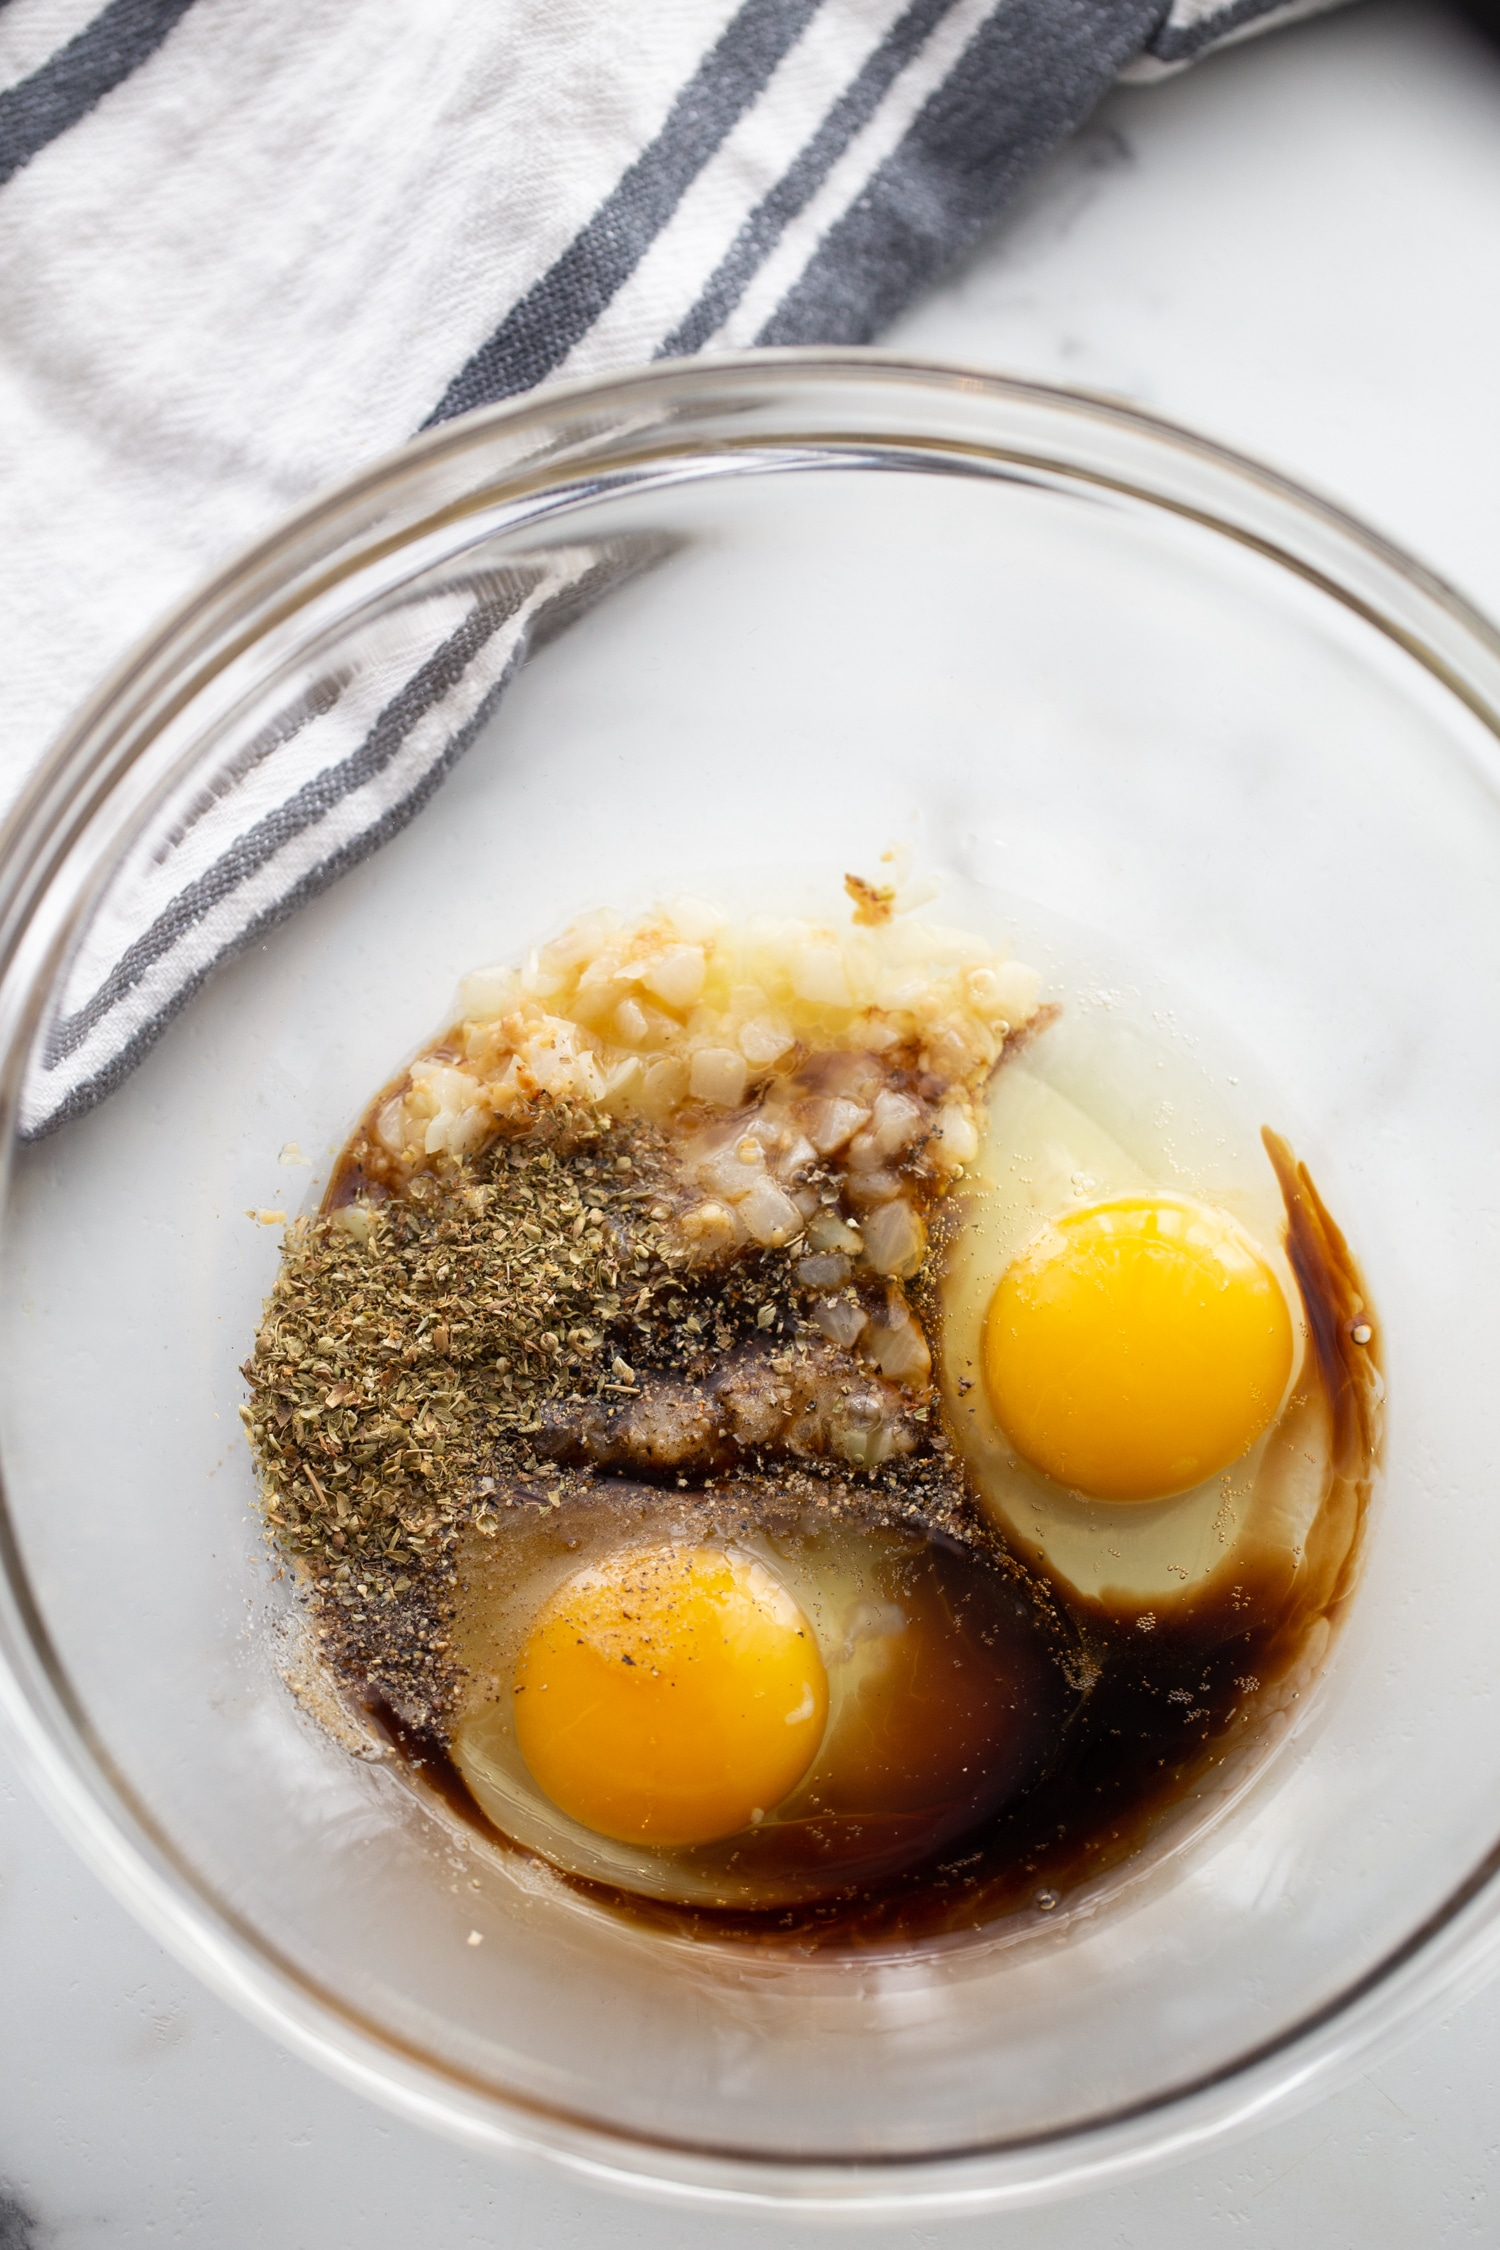 eggs, parmesan cheese, worcestershire sauce, onions, garlic, spices in a clear bowl